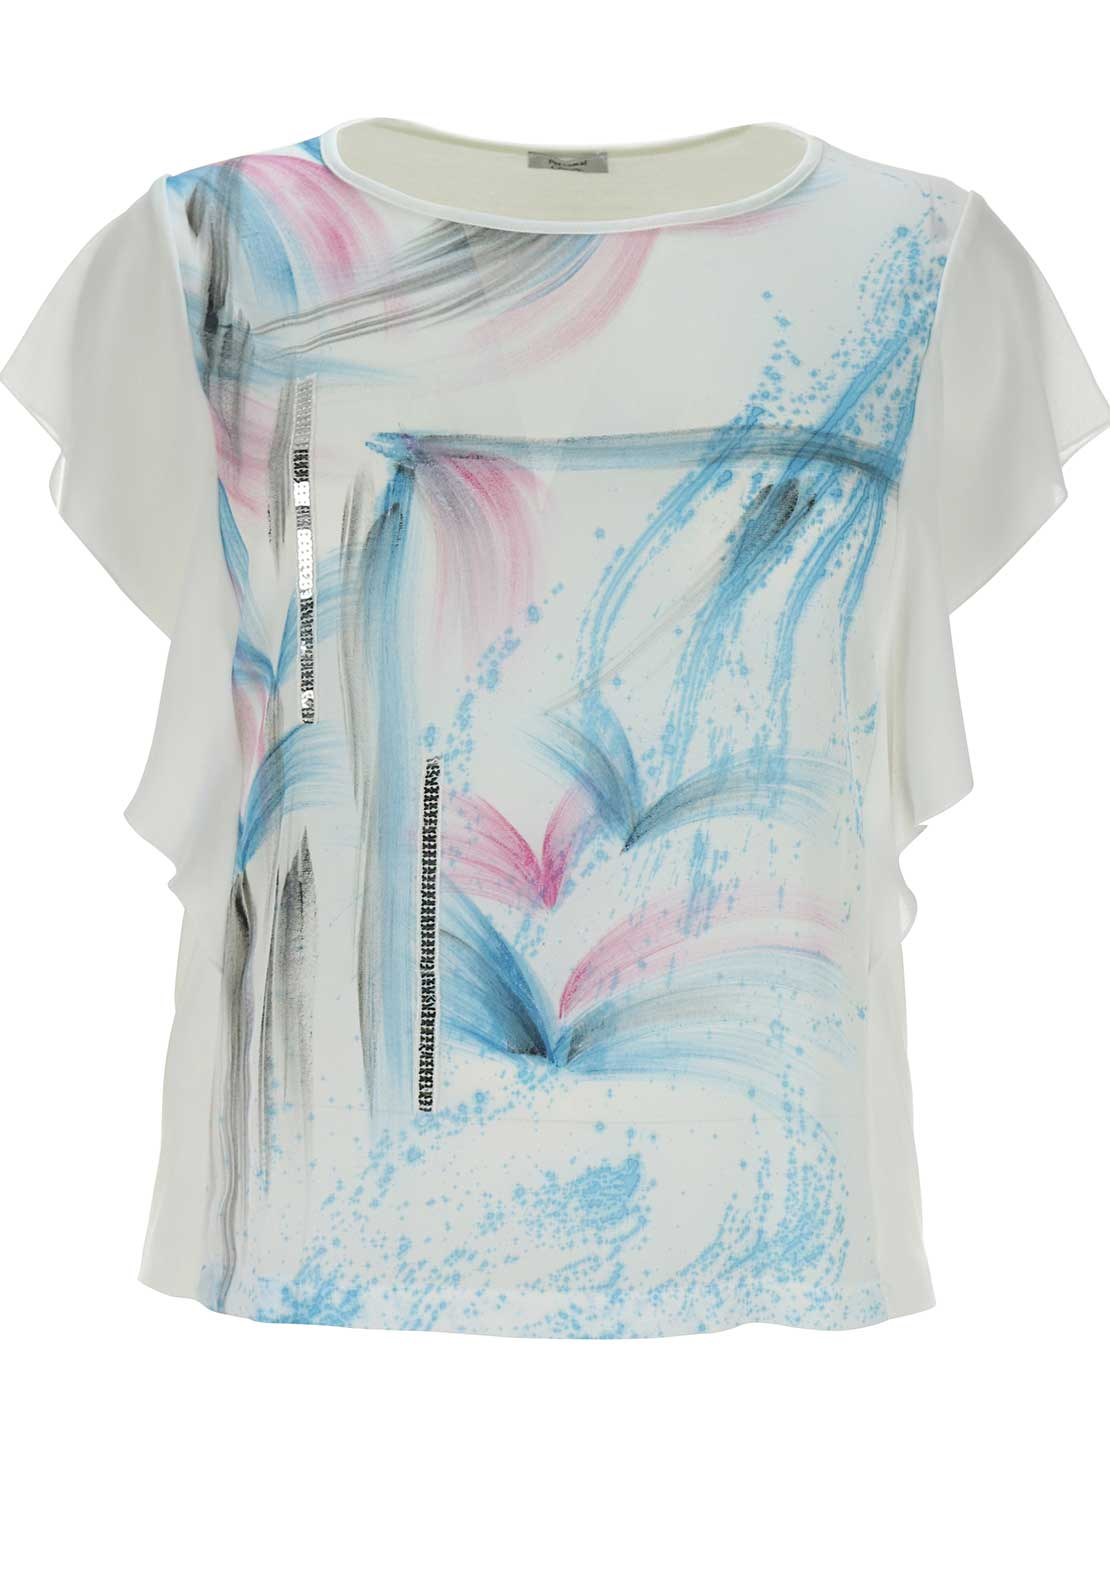 Personal Choice Brushstroke Print Short Sleeve Top, White Multi